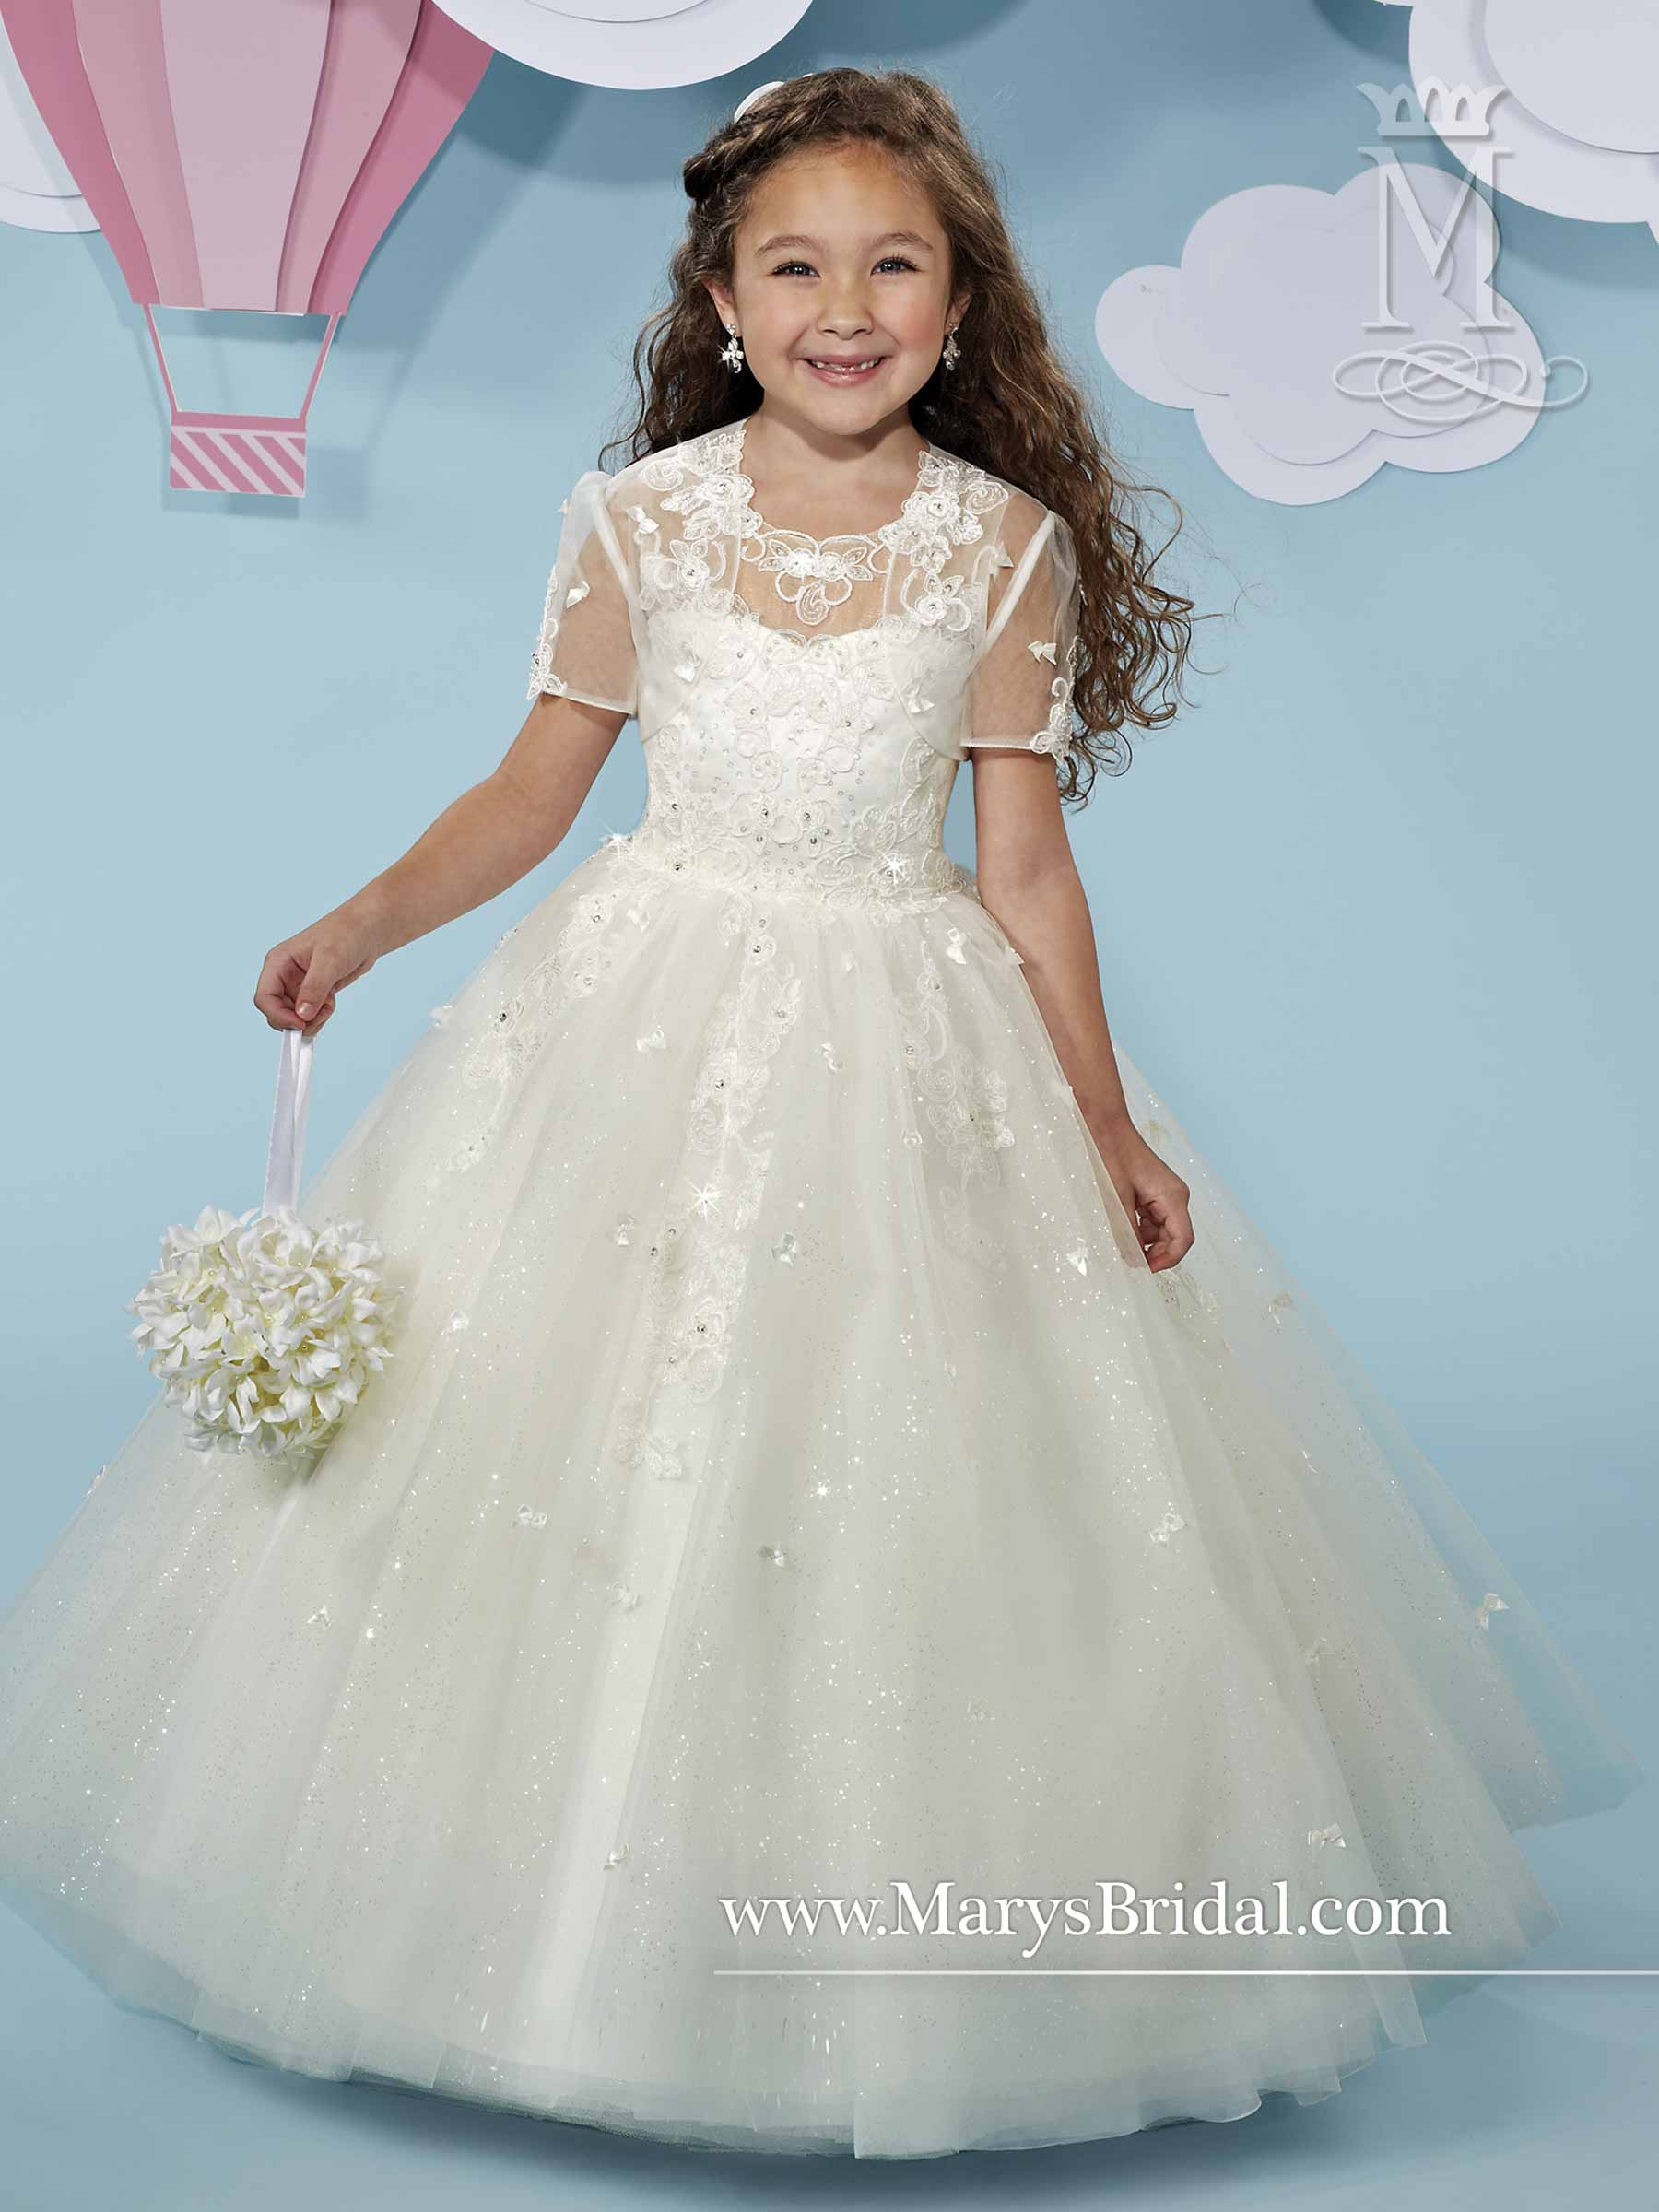 Dorable Mexican Wedding Gowns Embellishment - Wedding and flowers ...